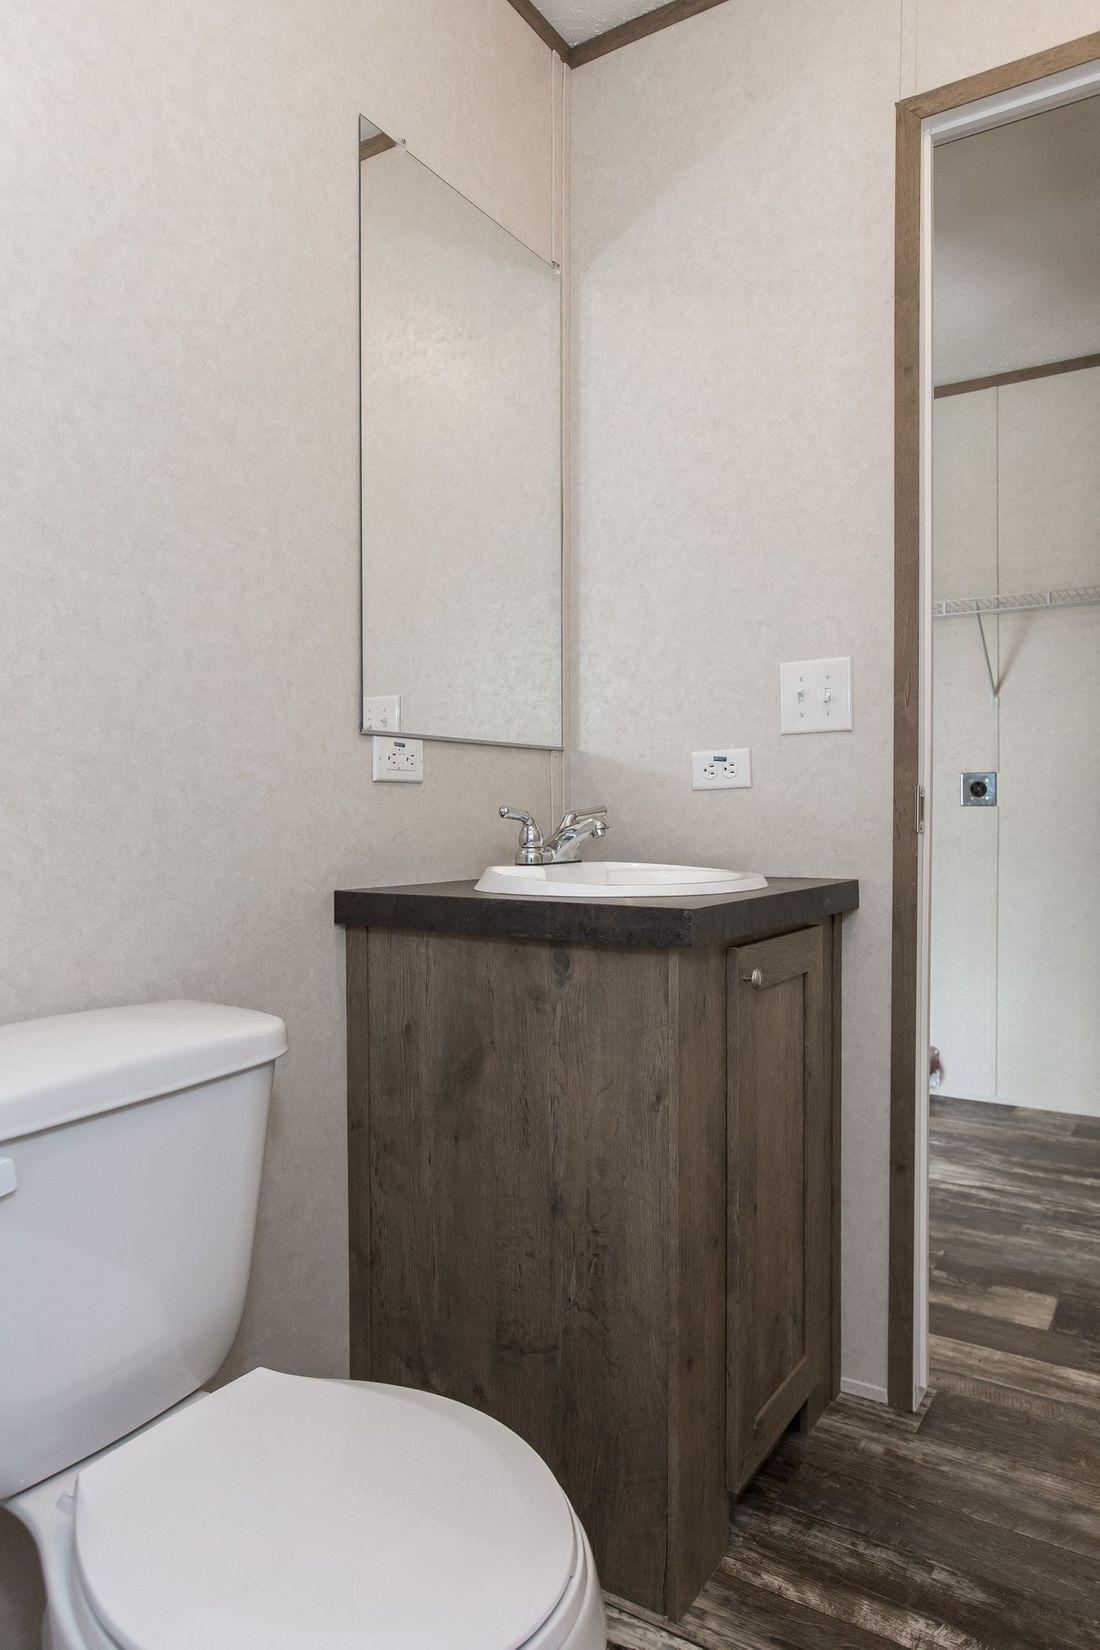 The THE BREEZE Guest Bathroom. This Manufactured Mobile Home features 3 bedrooms and 2 baths.